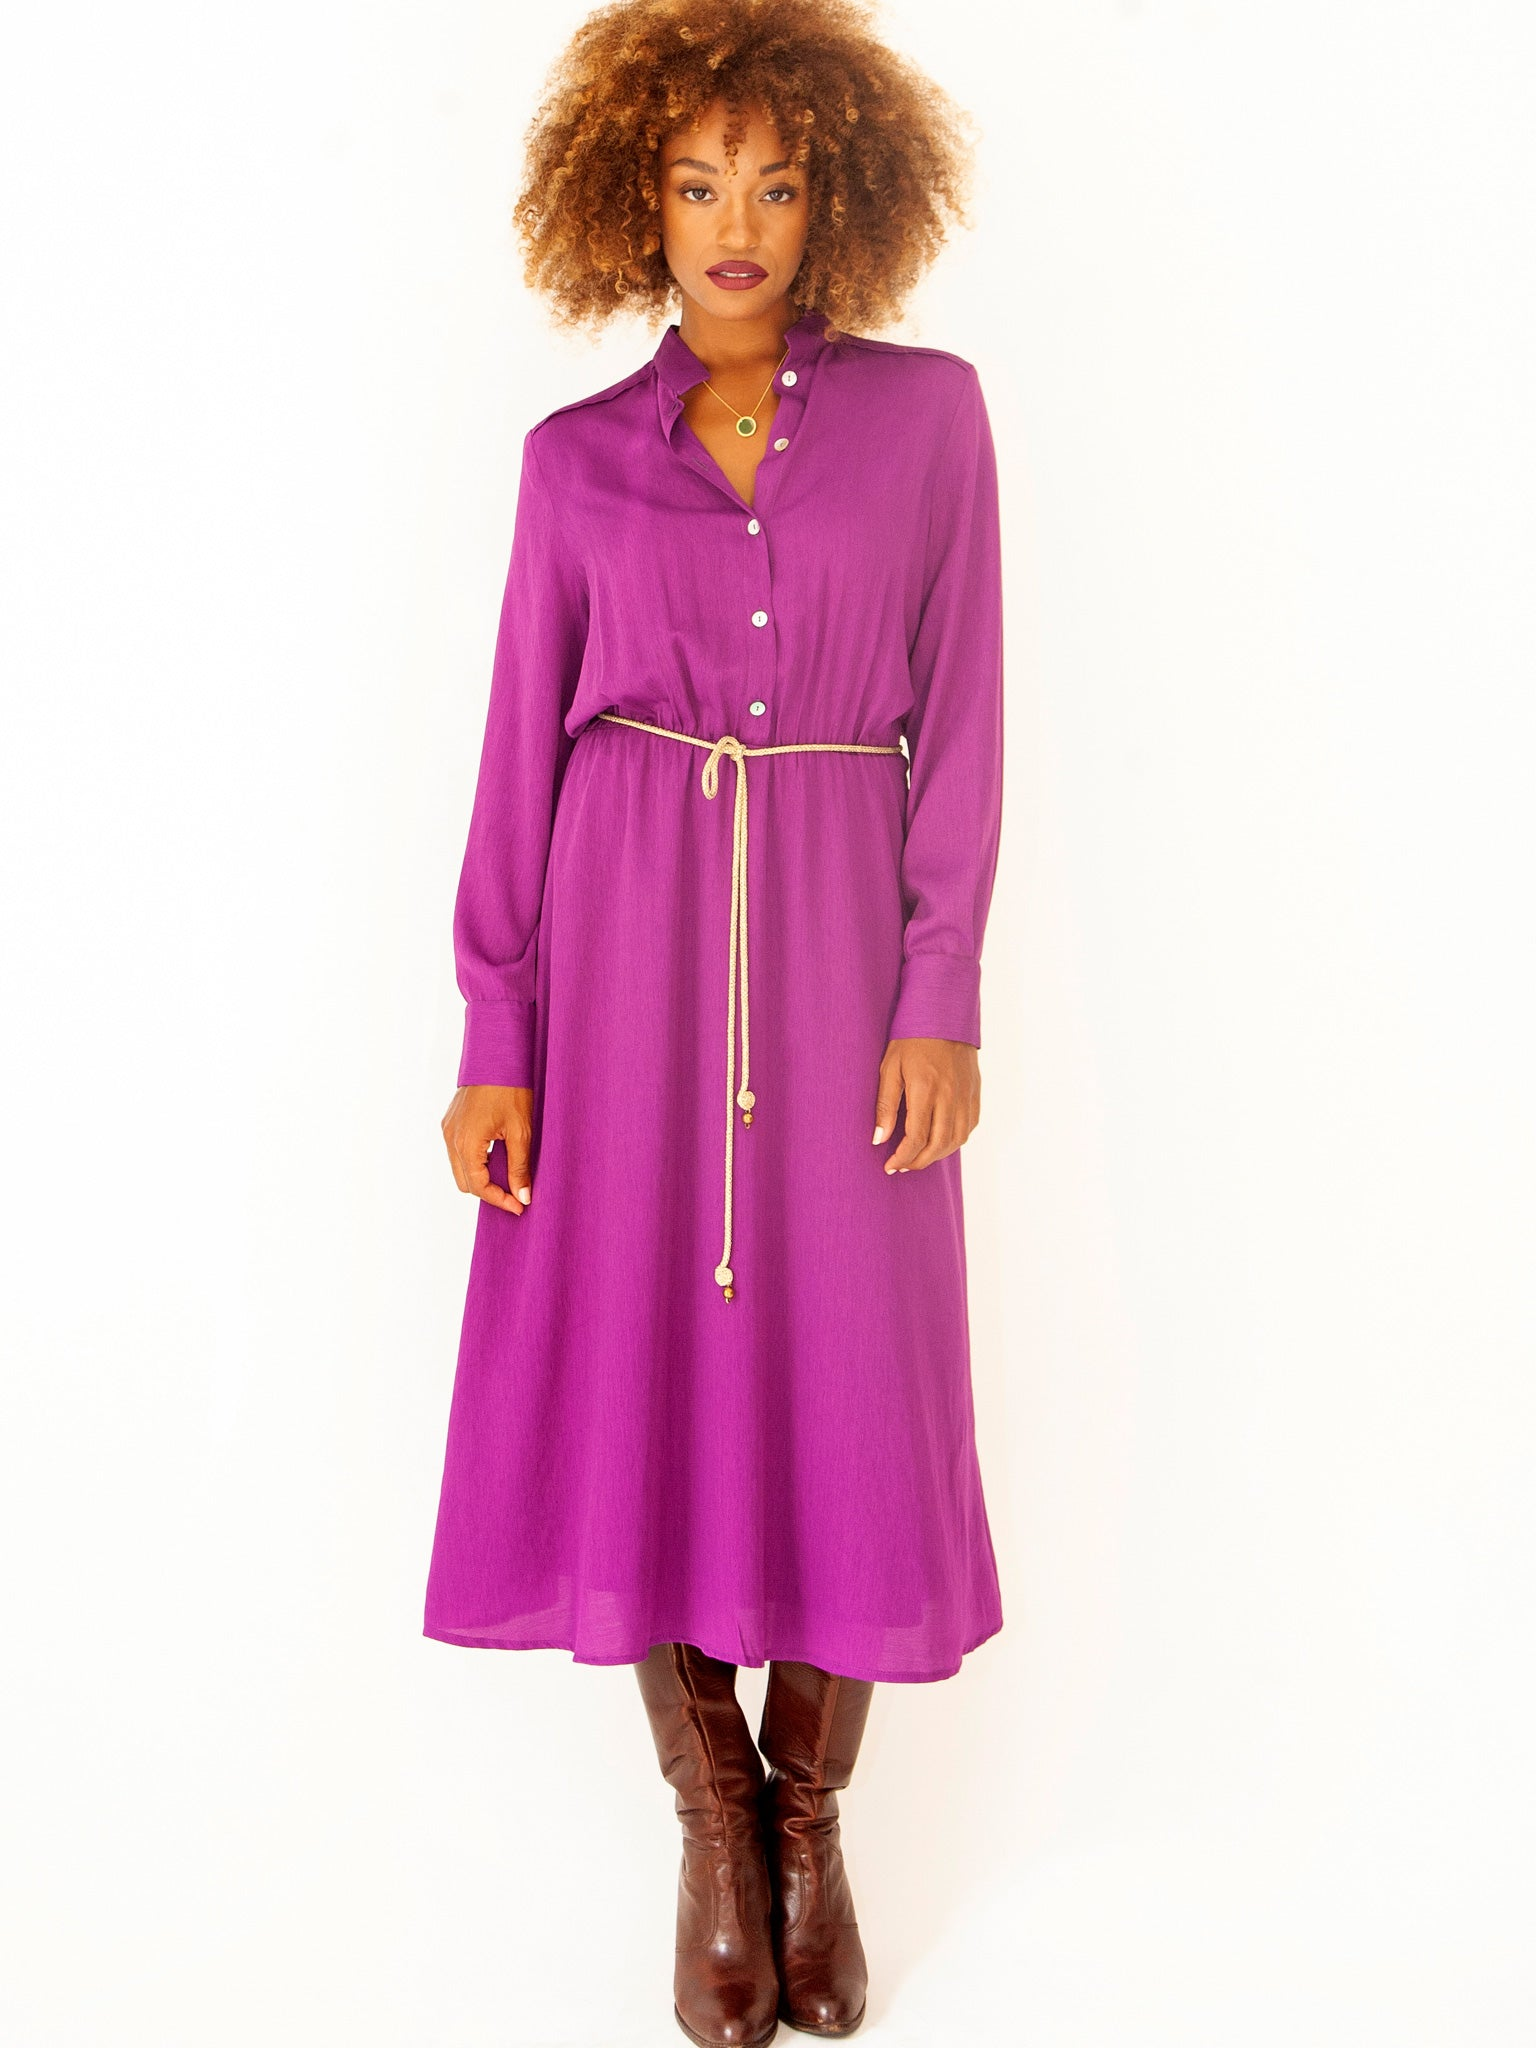 Violet Smart Casual Shirt Dress